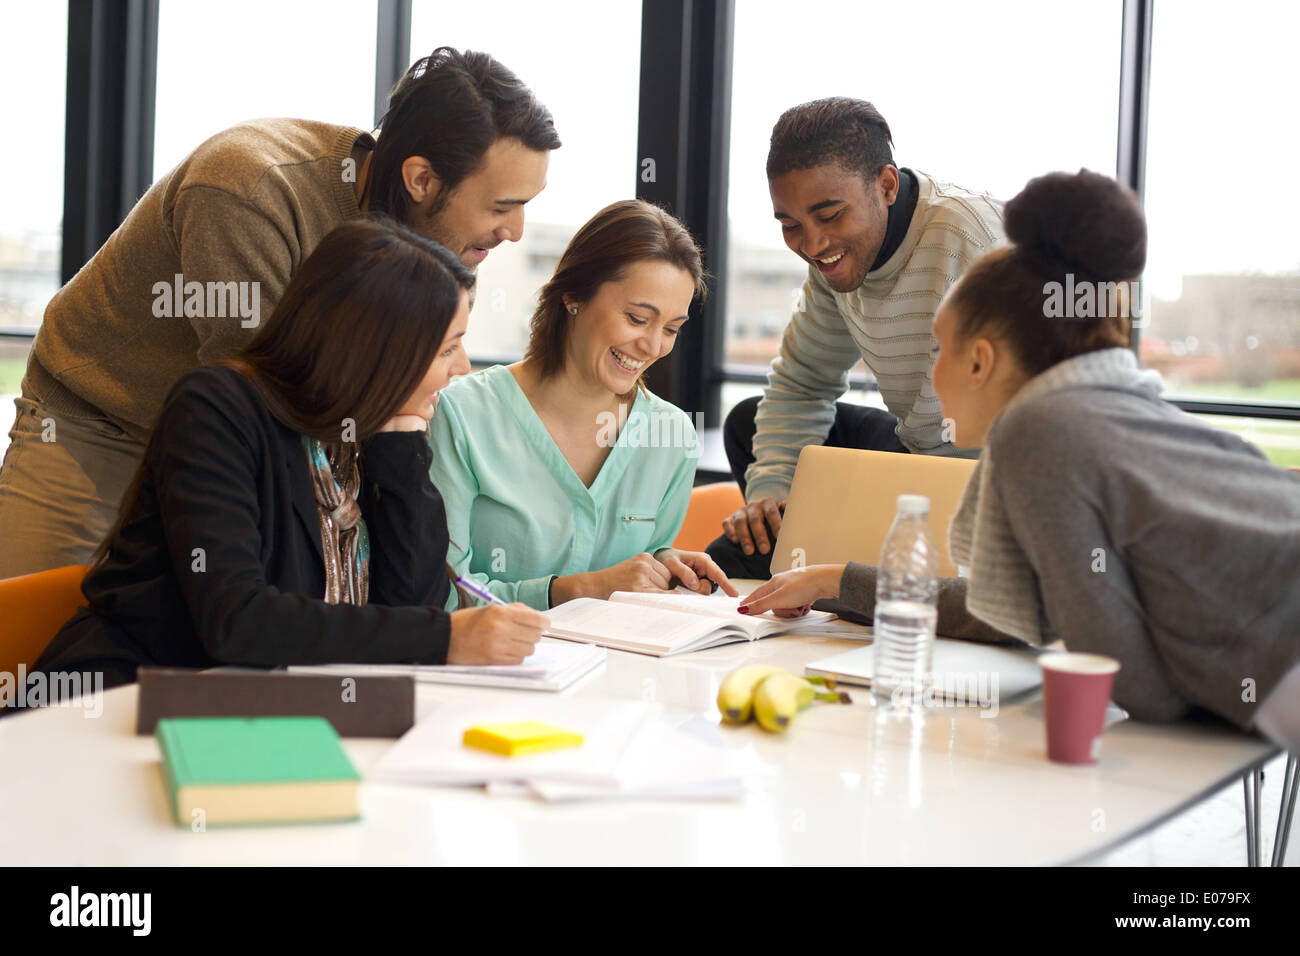 Group of happy young students in cooperation with their school assignment. Multiethnic young people sitting at table reading. - Stock Image